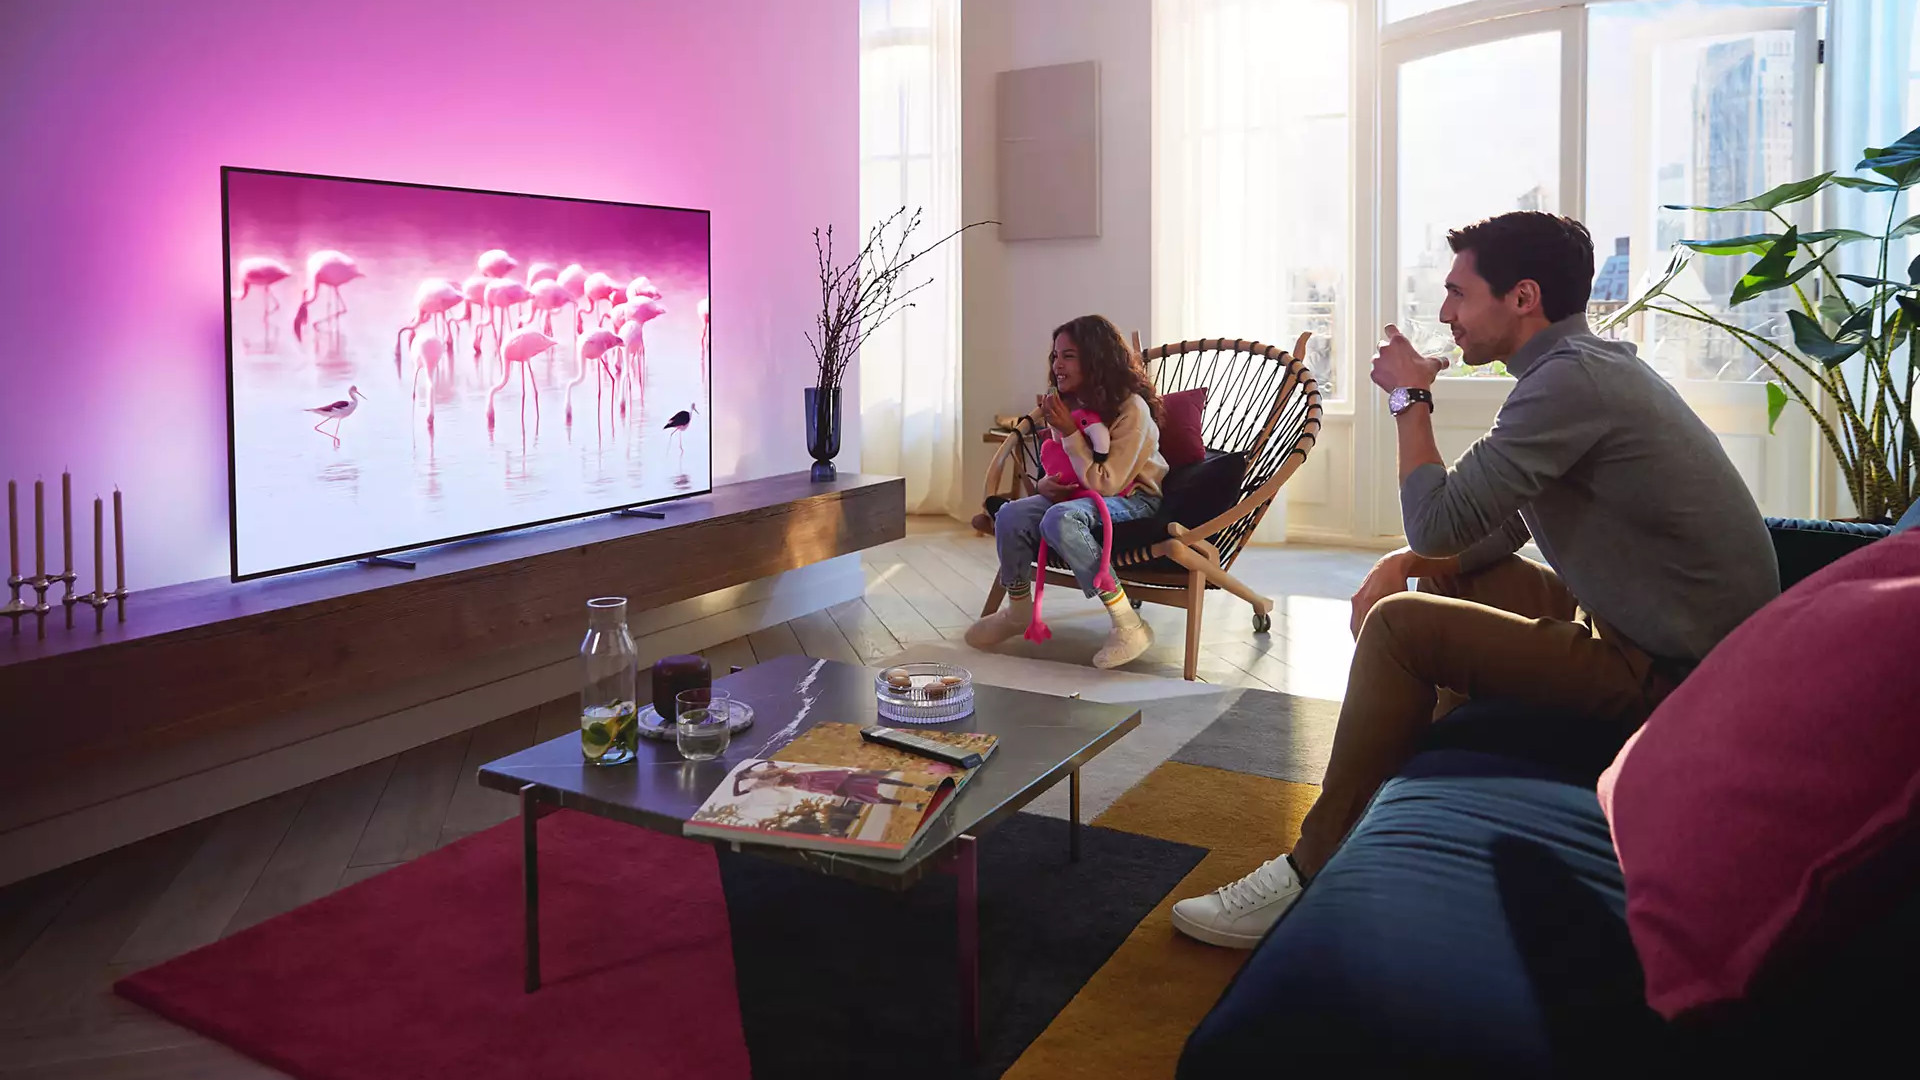 The Philips OLED 806 in a living room.